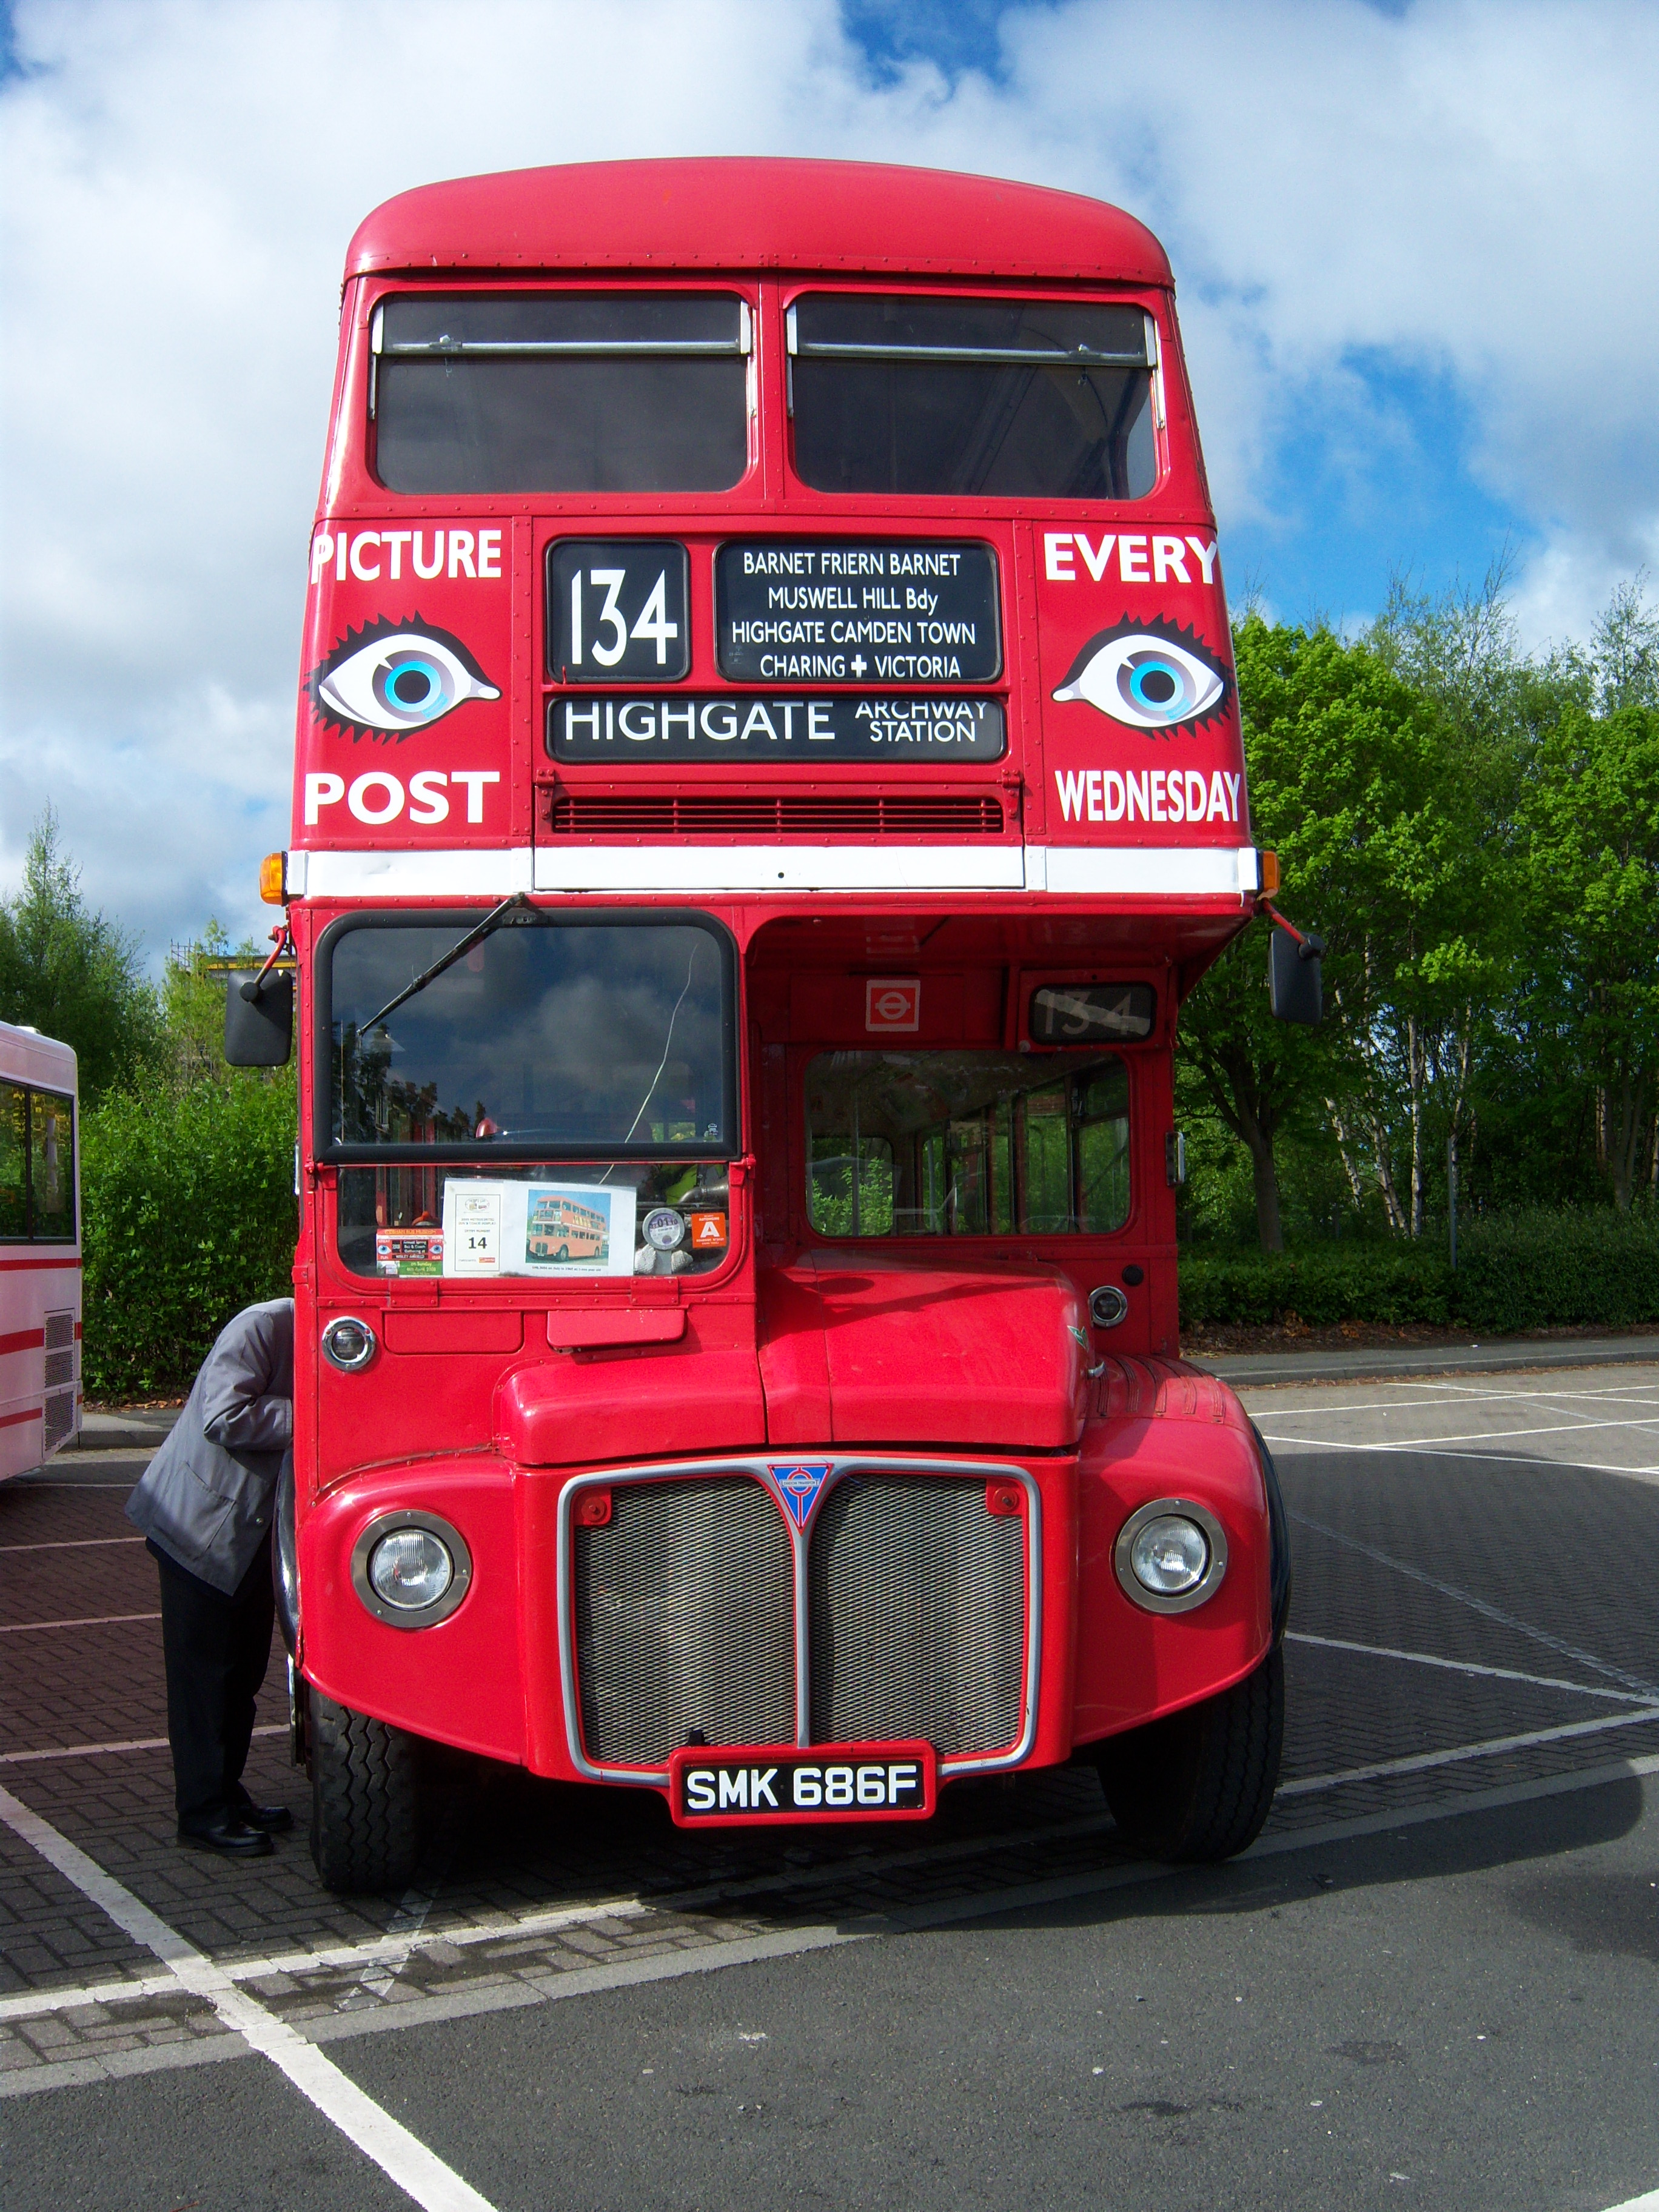 File:Routemaster bus RML 2686 Routemaster 50 livery SMK 686F Metrocentre  rally 2009 pic 4